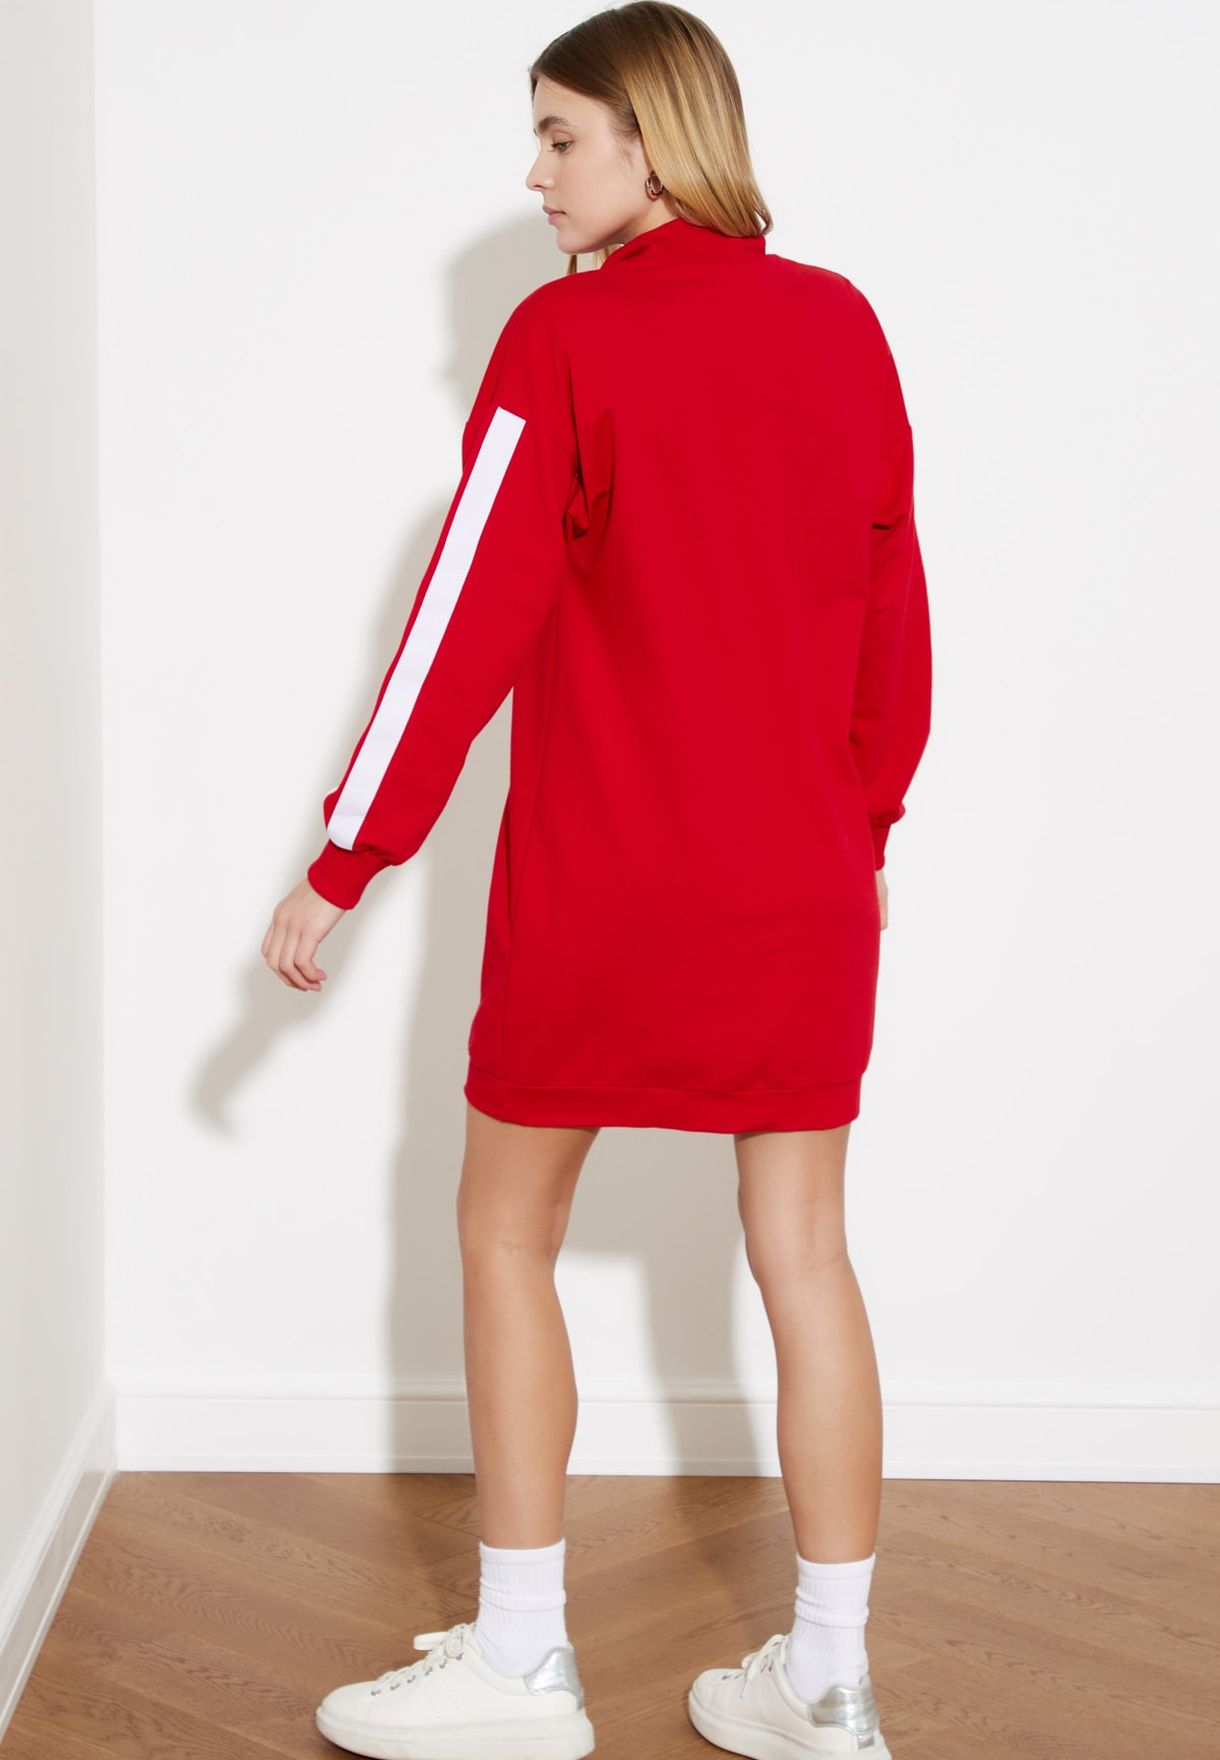 Colorblock Knitted Dress